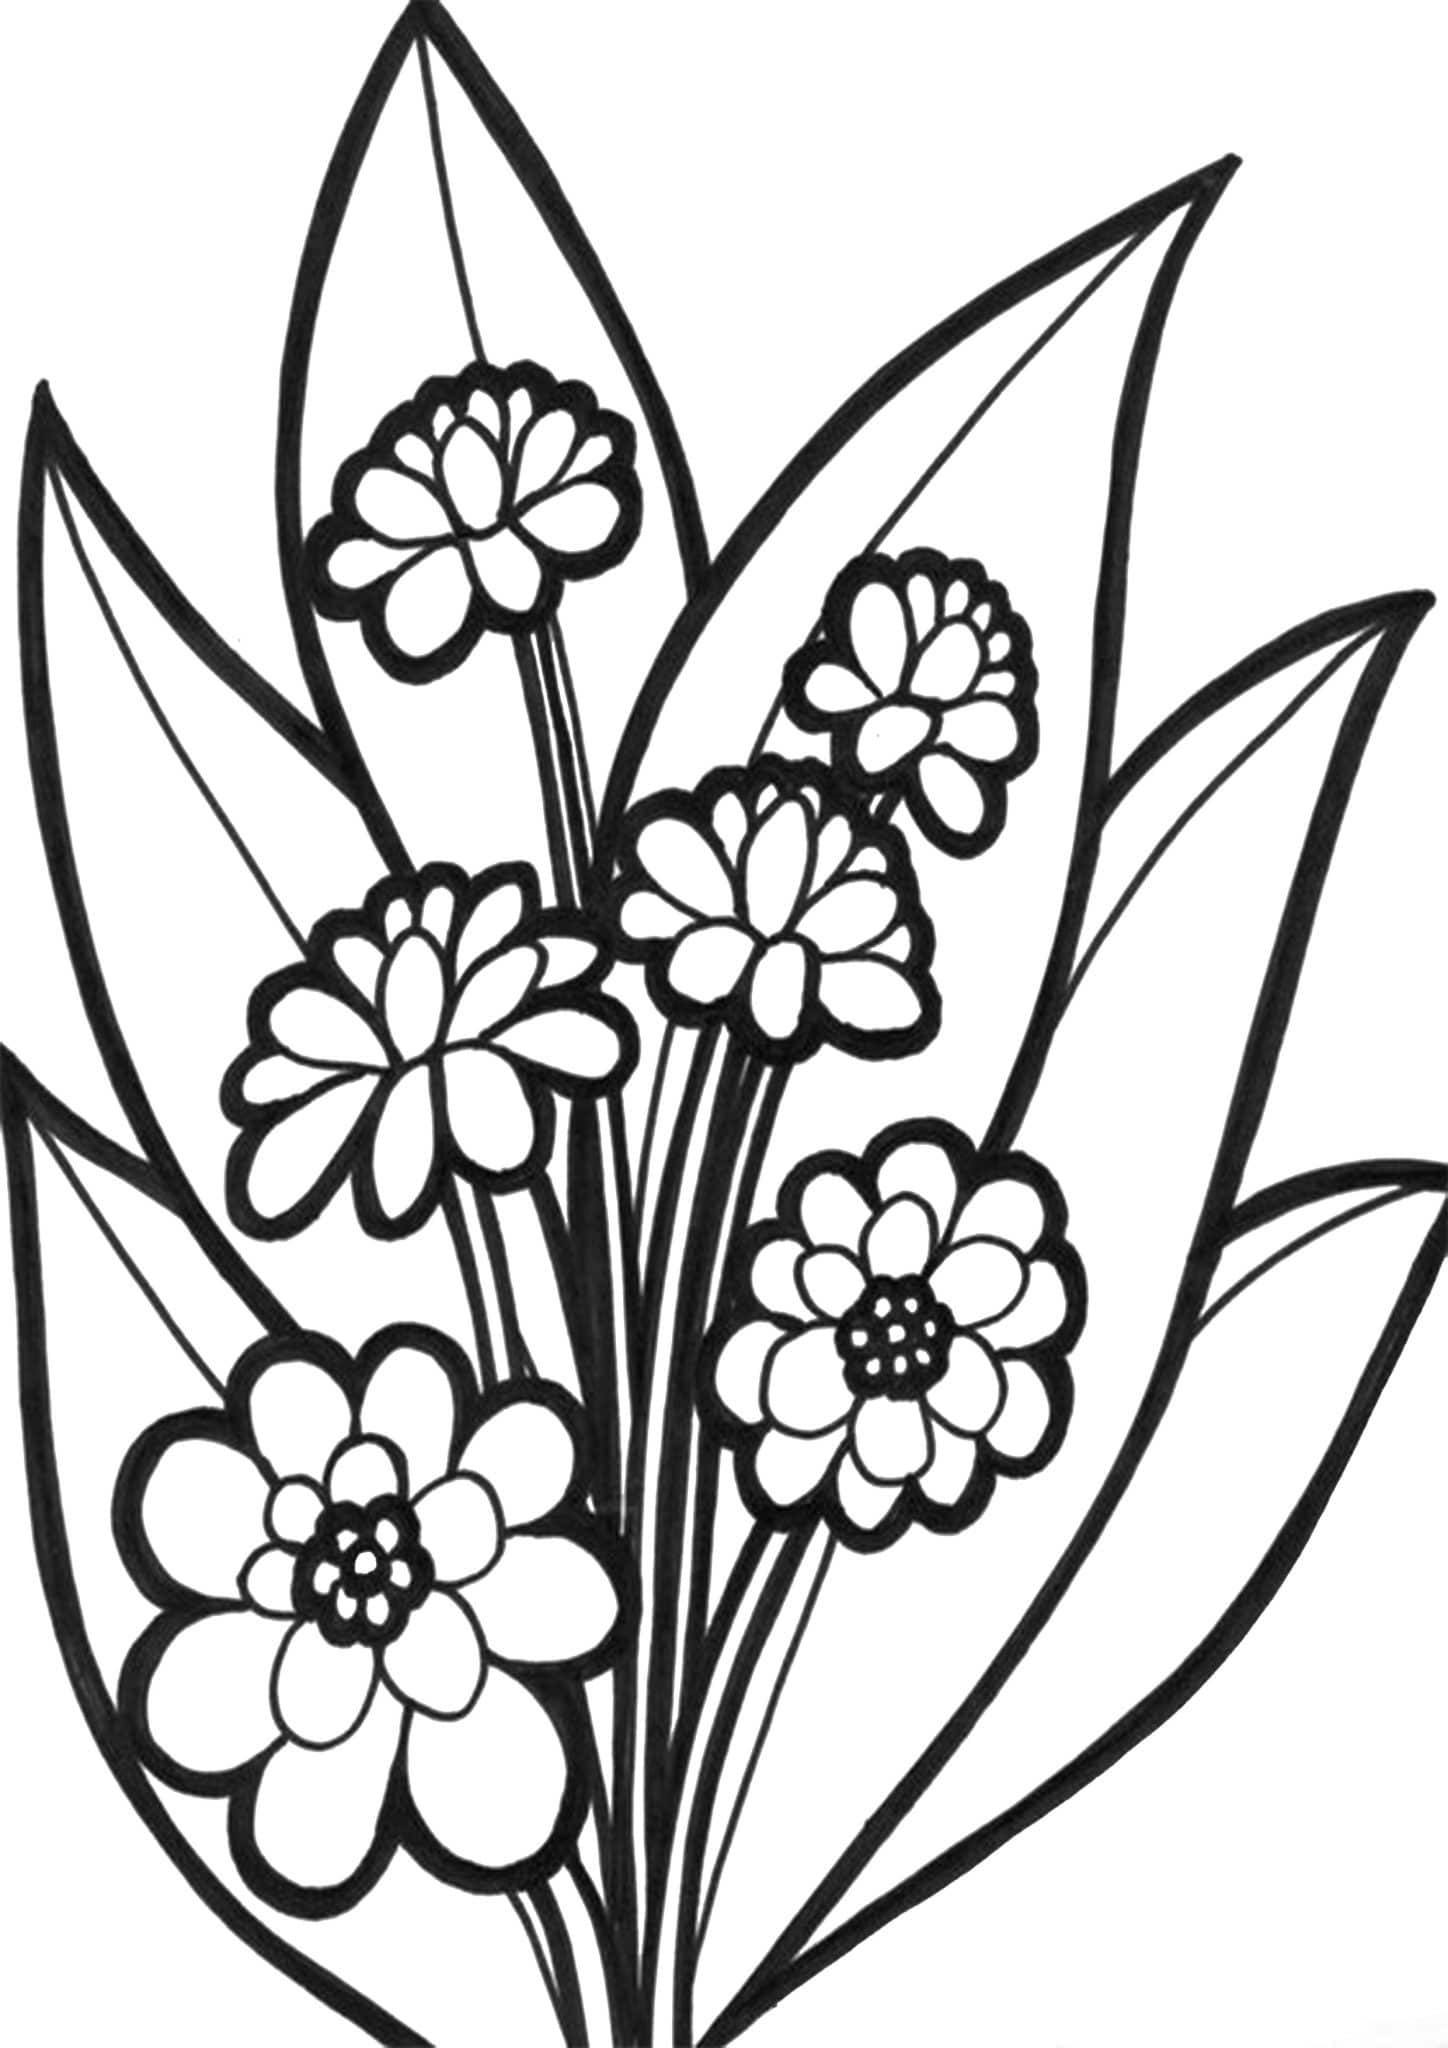 coloring flower free download to print beautiful spring flower coloring coloring flower